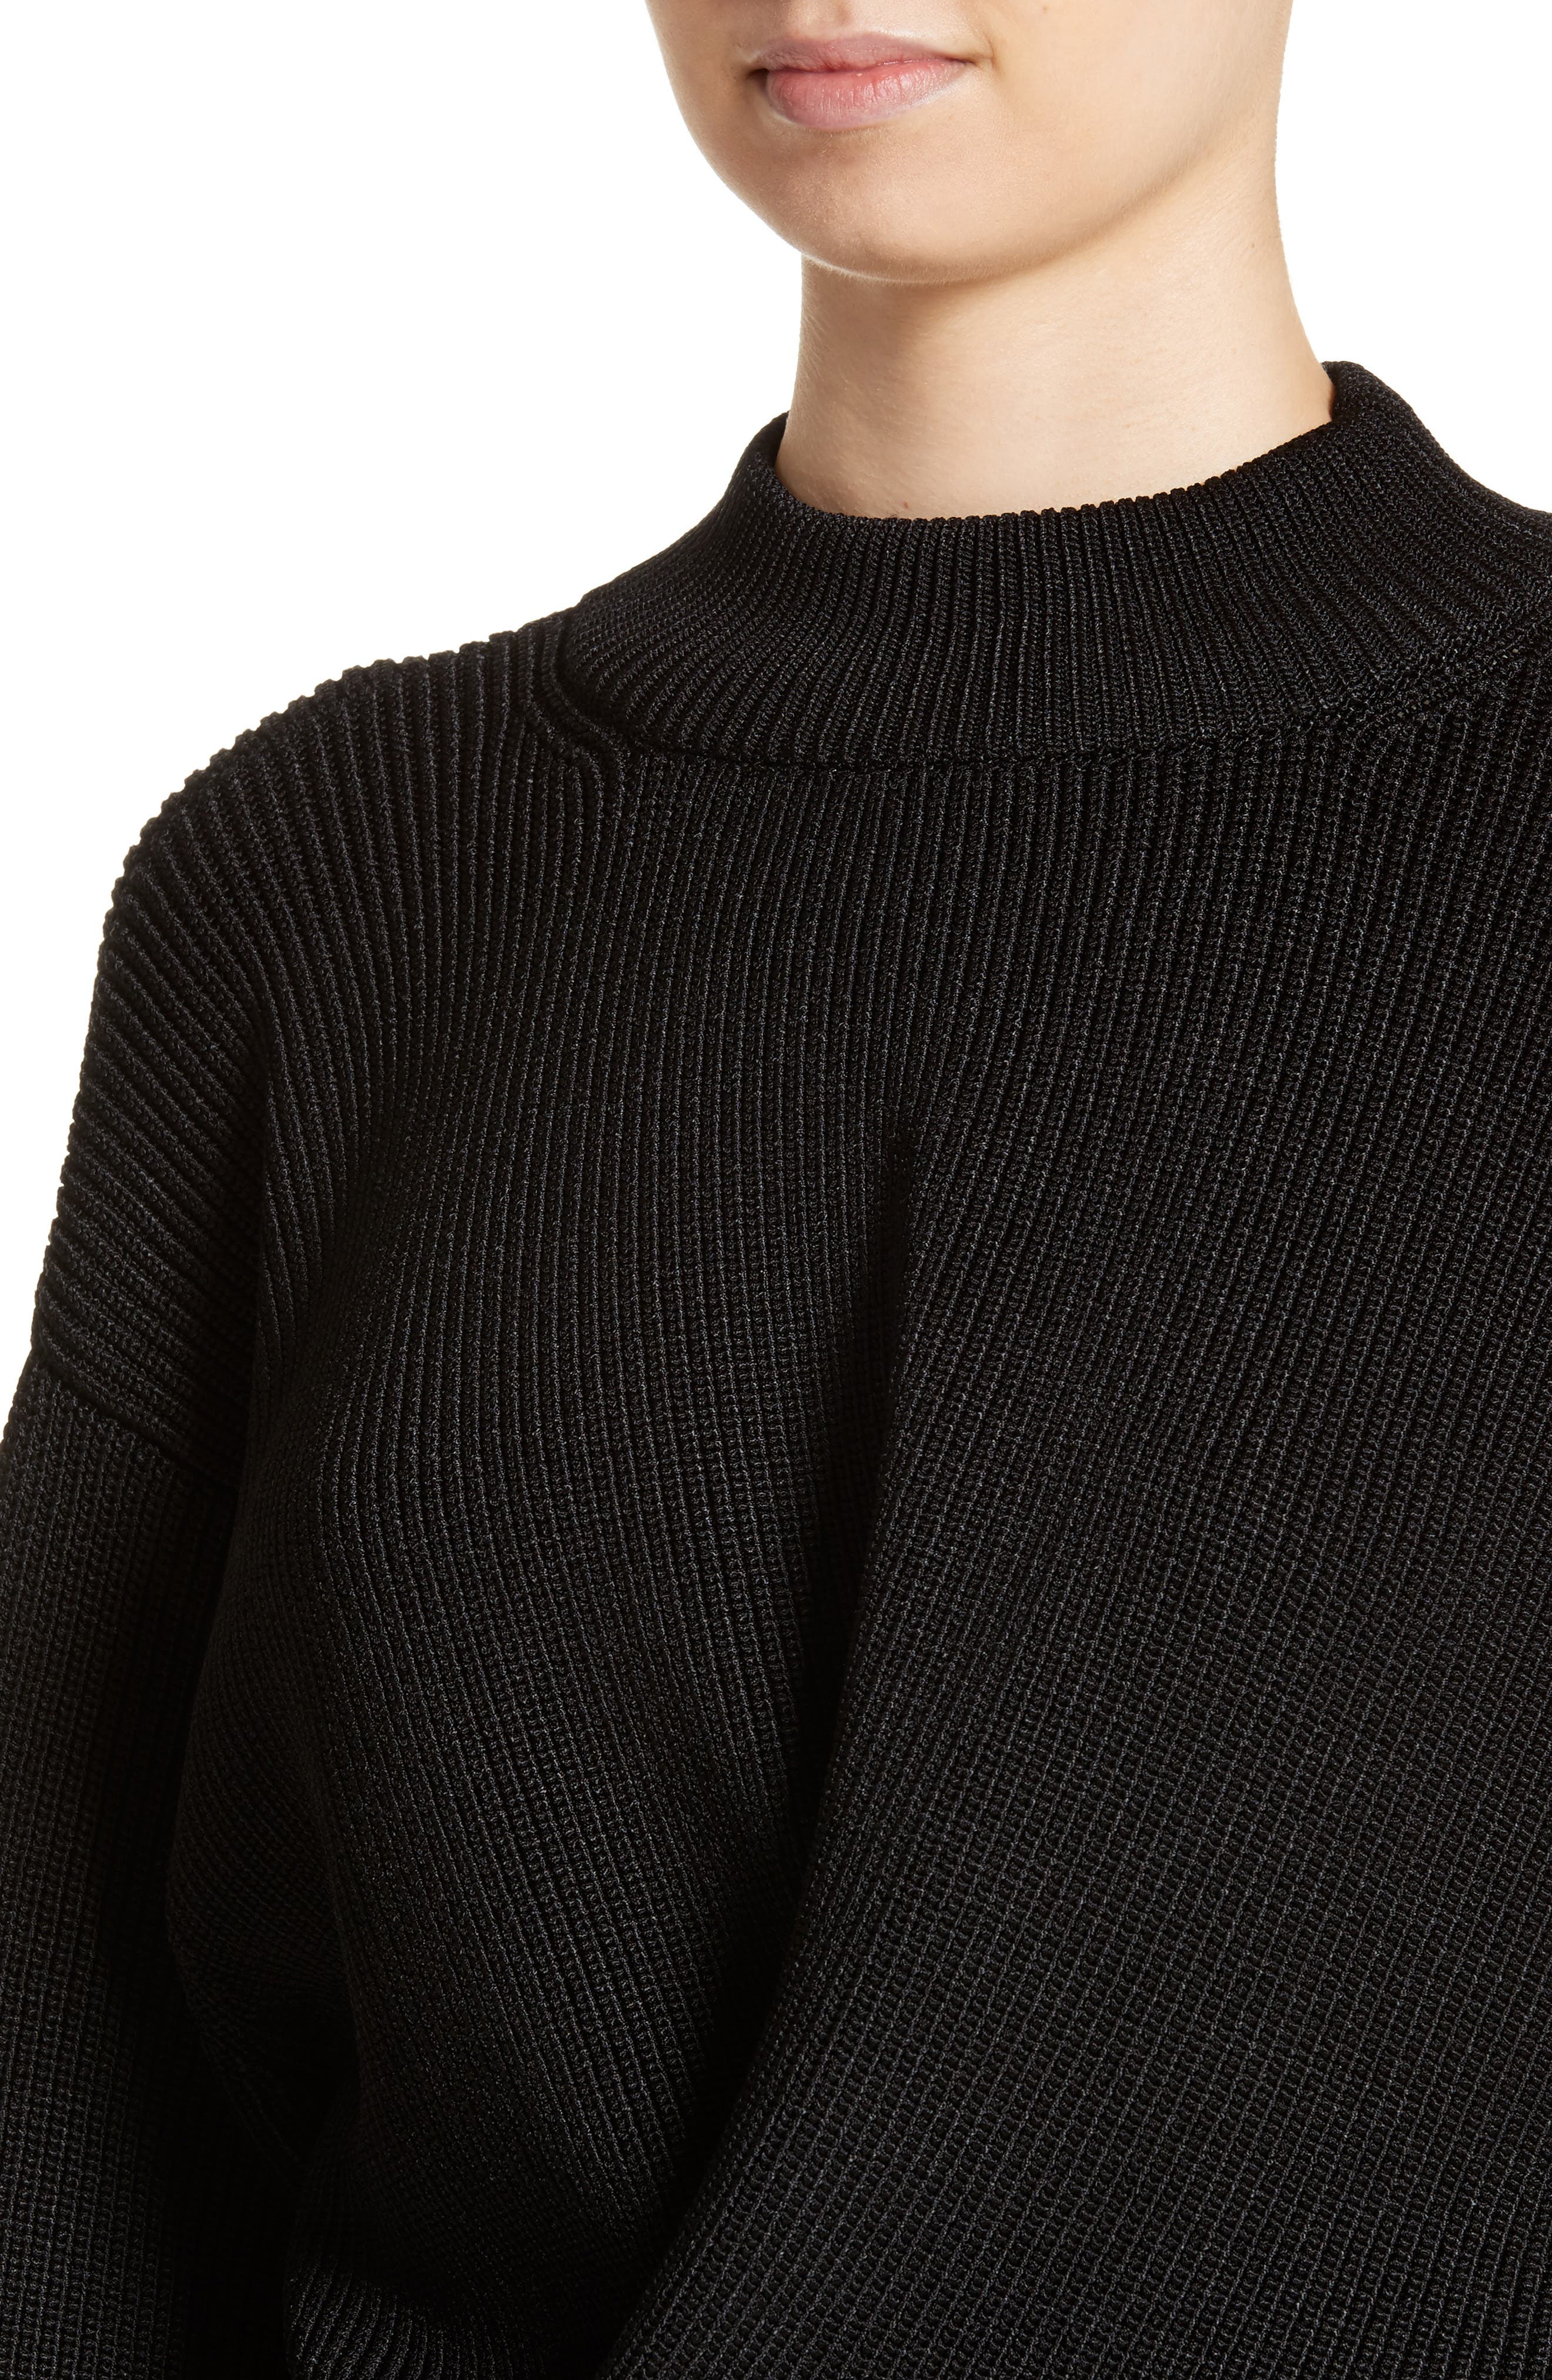 Mock Neck Sweater,                             Alternate thumbnail 4, color,                             001